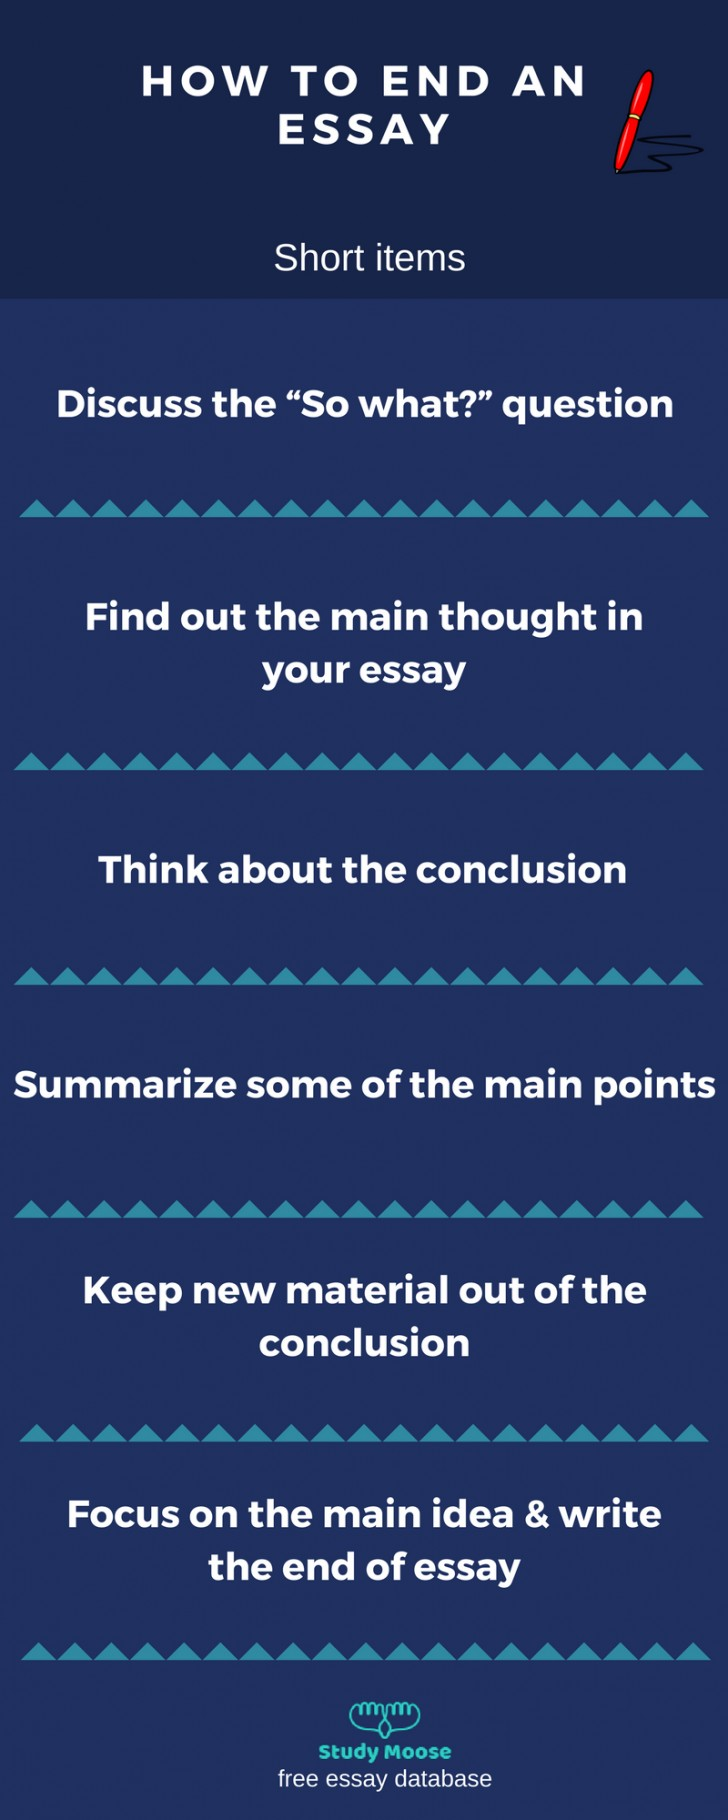 003 Essay Example Good Ways To End An Outstanding Opinion Best Way Argumentative What Are Some 728